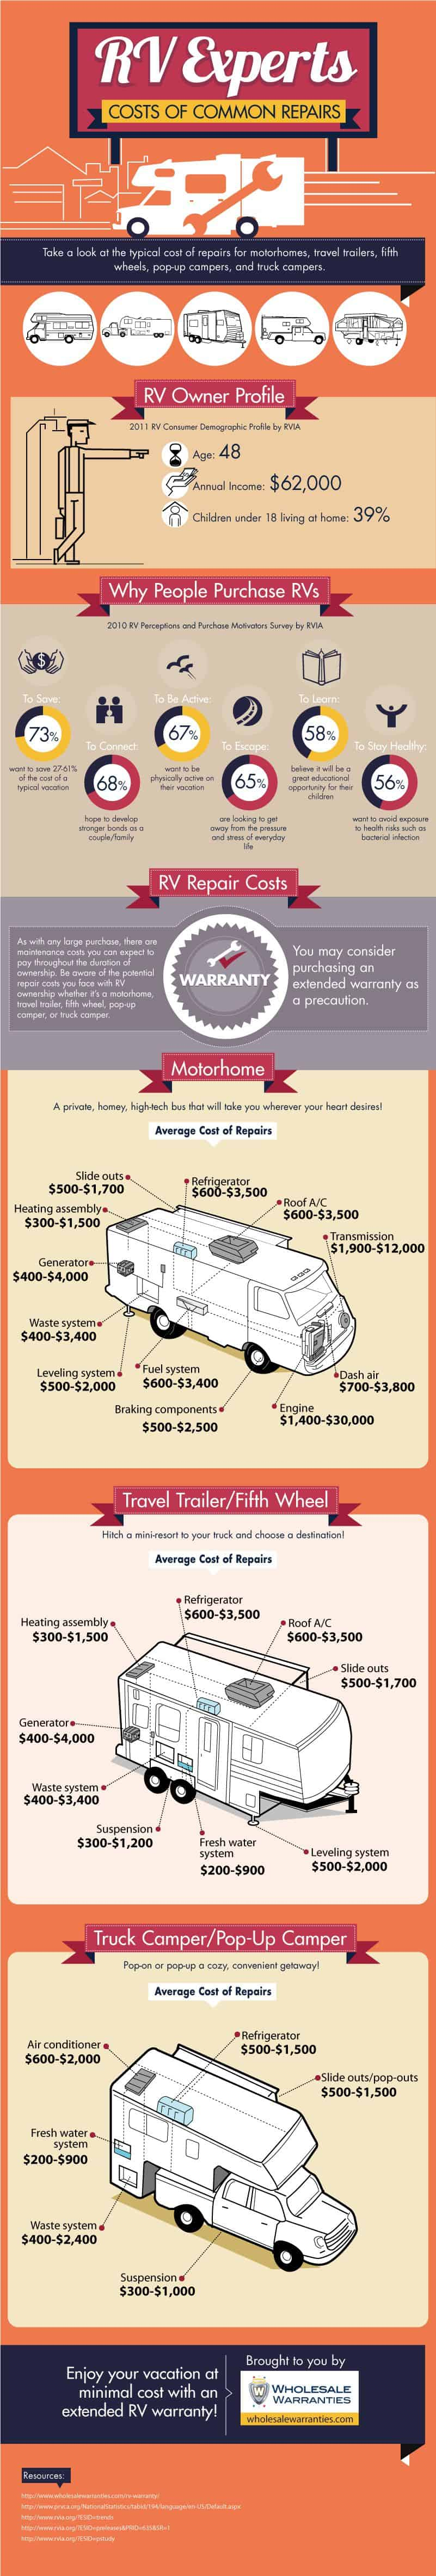 Rv Experts Costs Of Common Repairs Infographic Wholesale Warranties